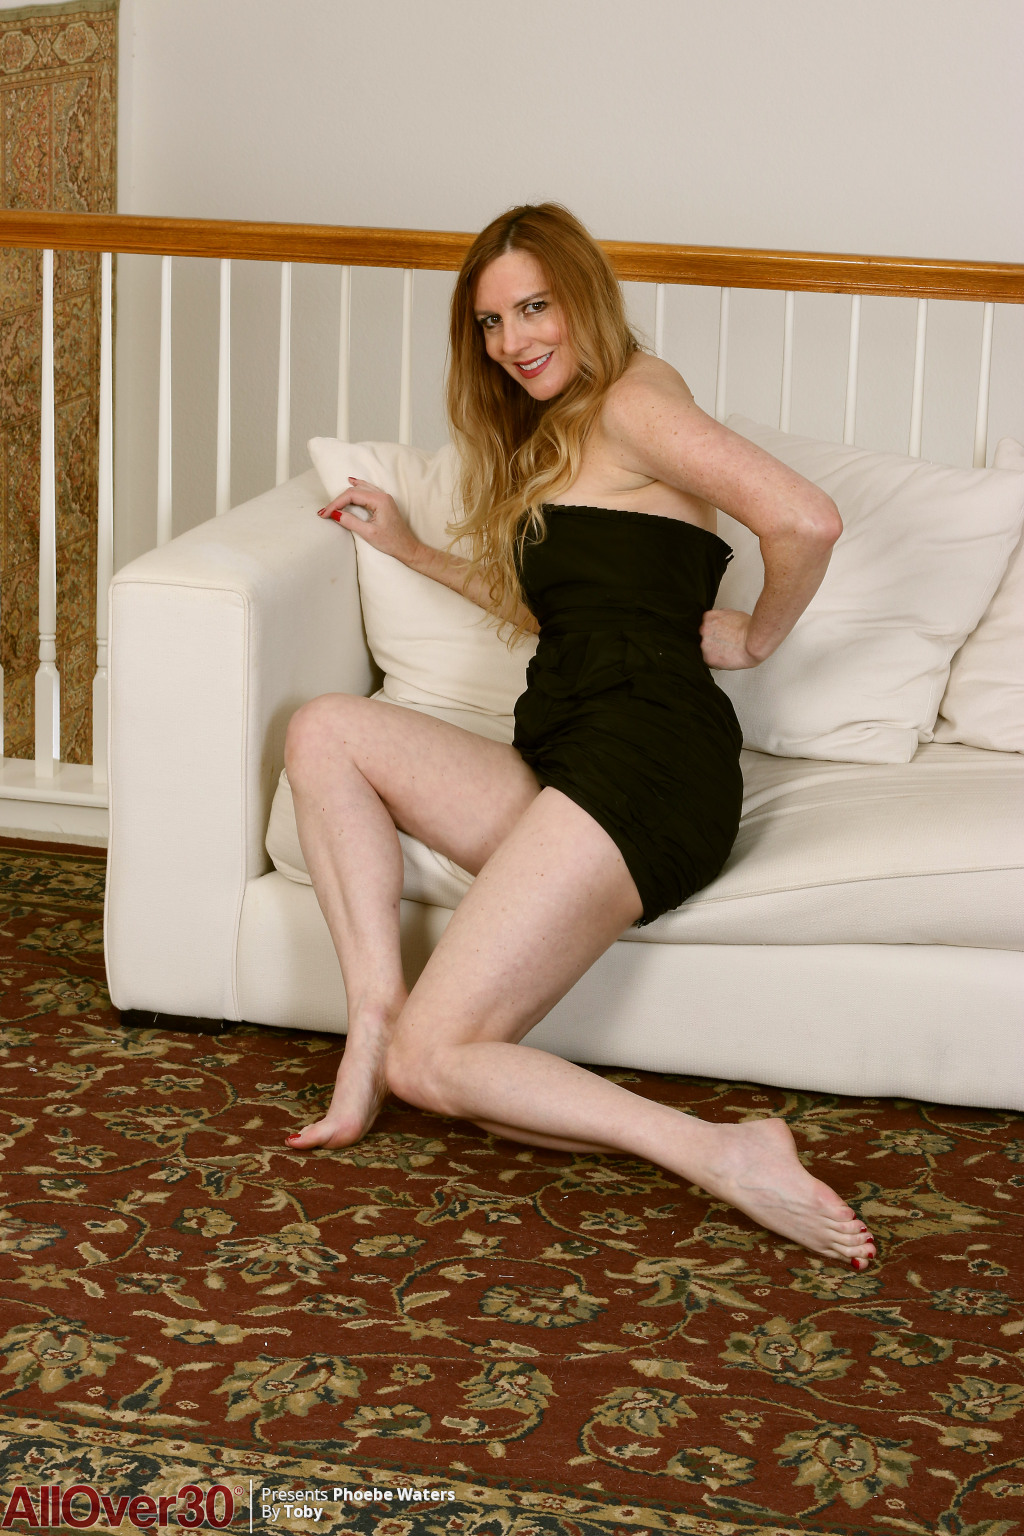 phoebe-waters-sexy-long-legs-07